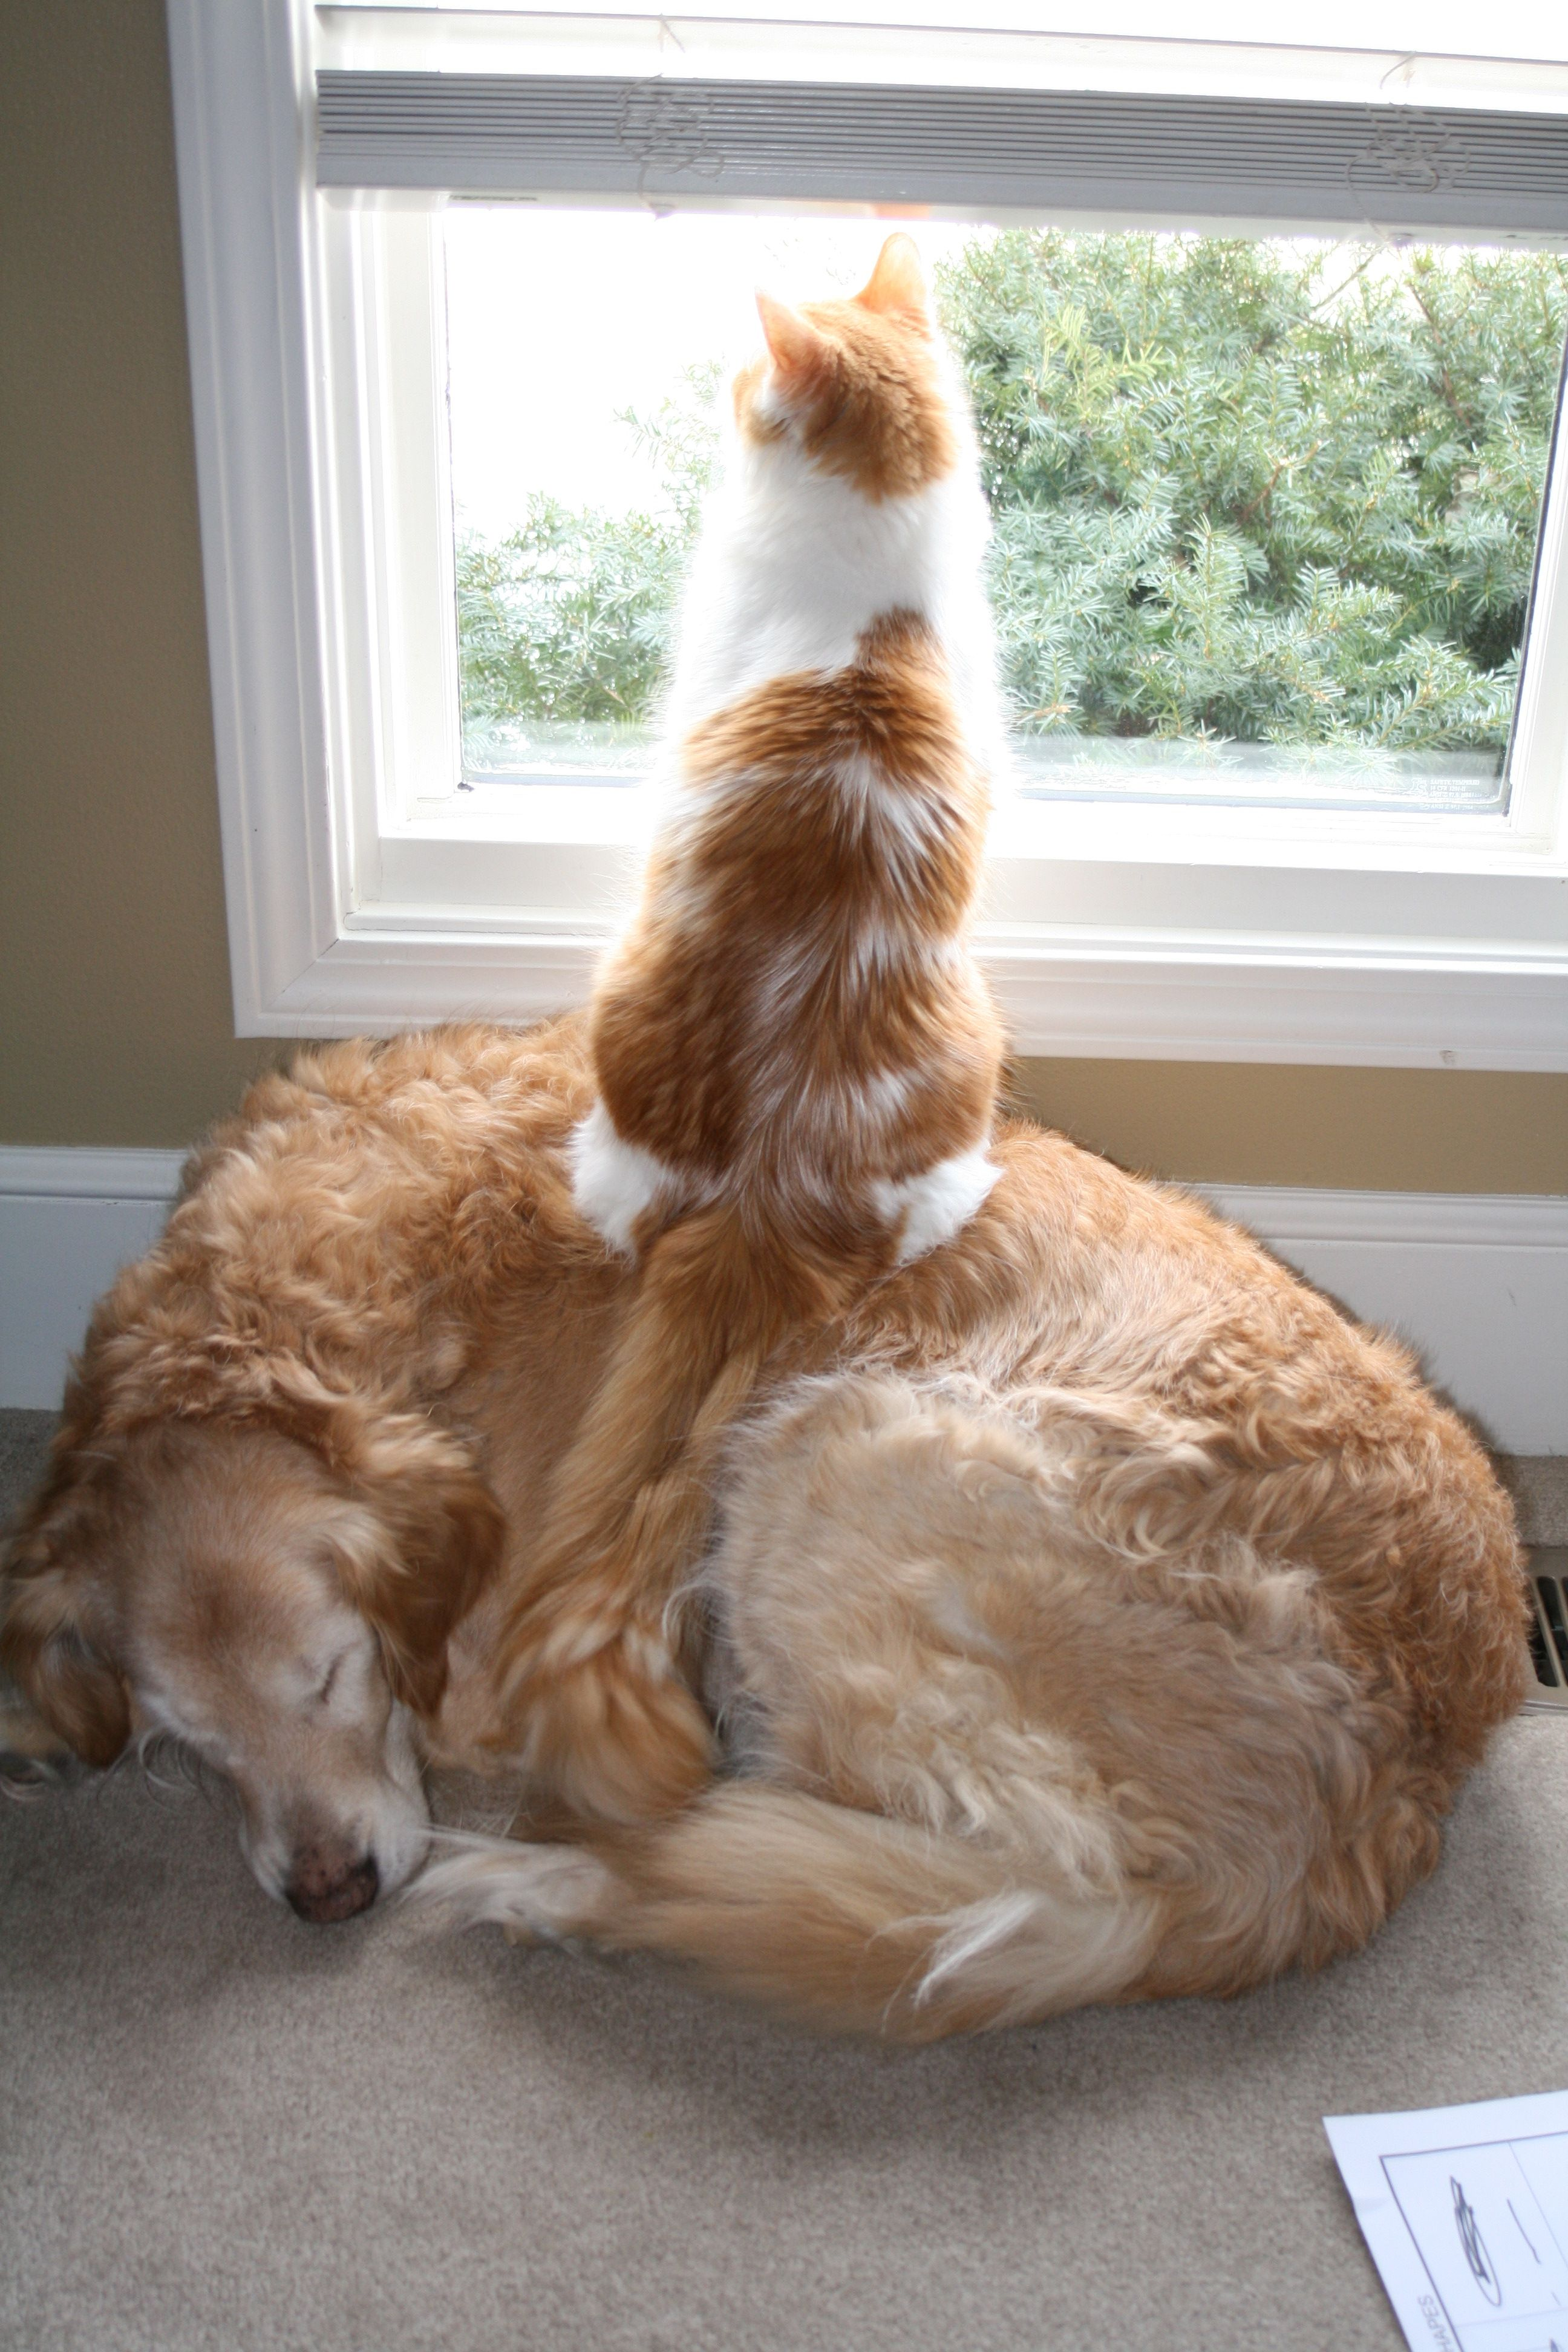 Watching for squirrels in the backyard - now that's team work!